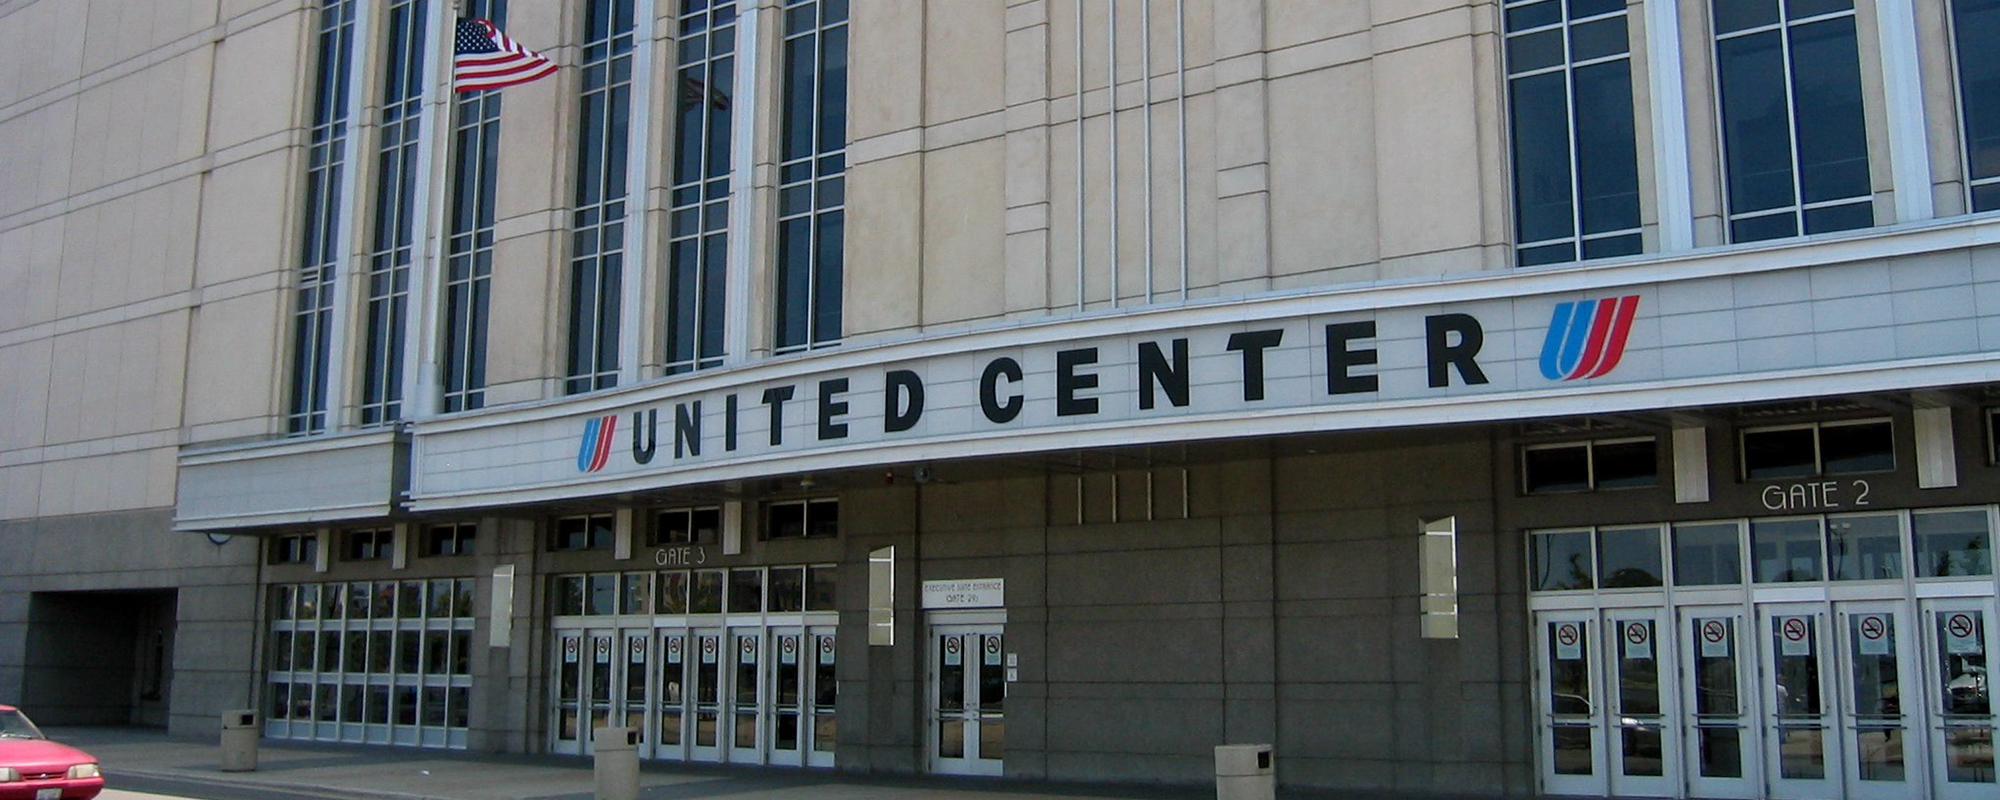 cta to open new l stop on green line near united center